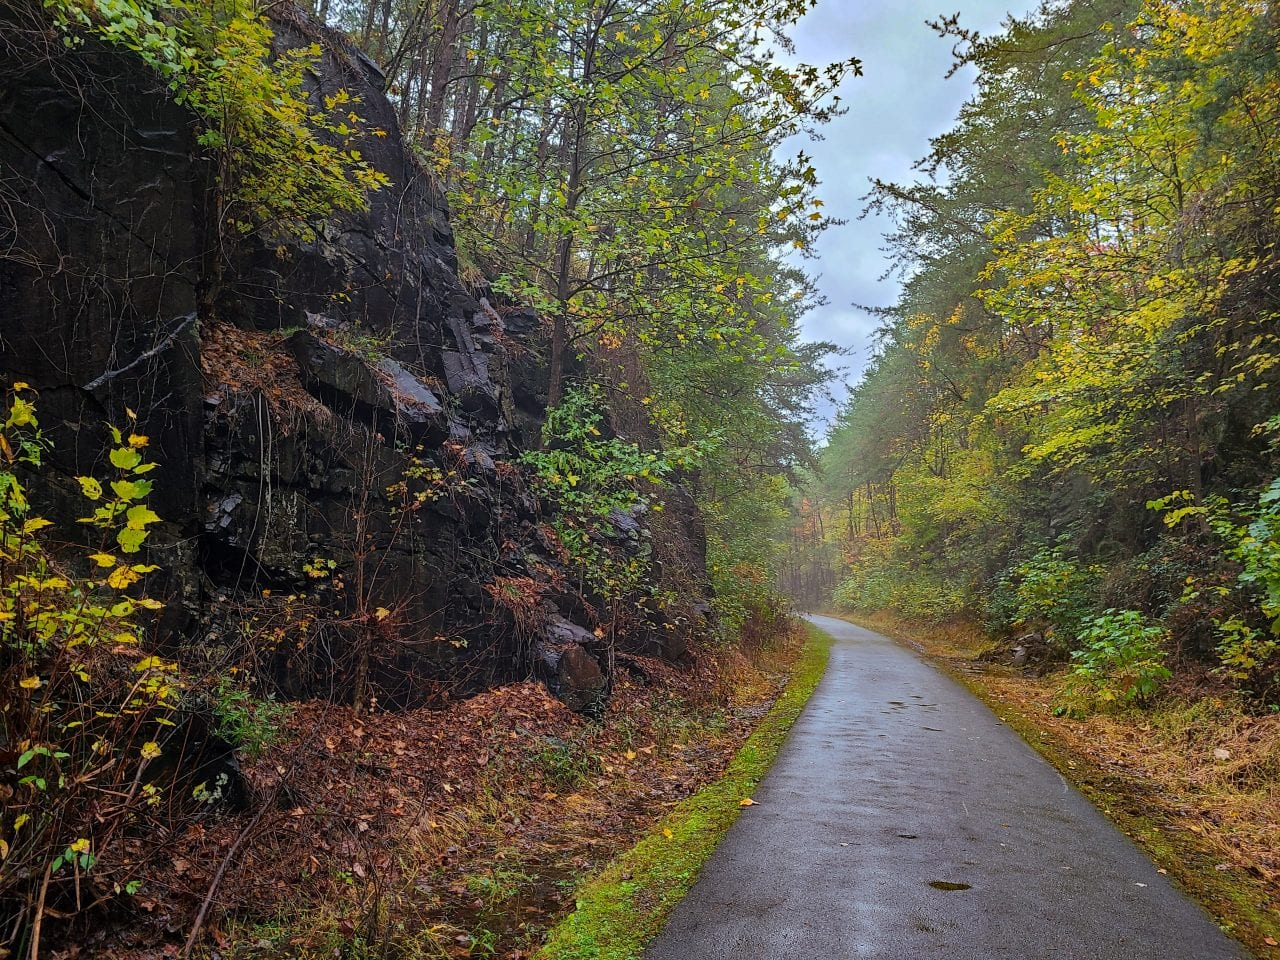 The Ultimate Chief Ladiga Trail Guide - Alabama's Premiere Rails-to-Trails Project